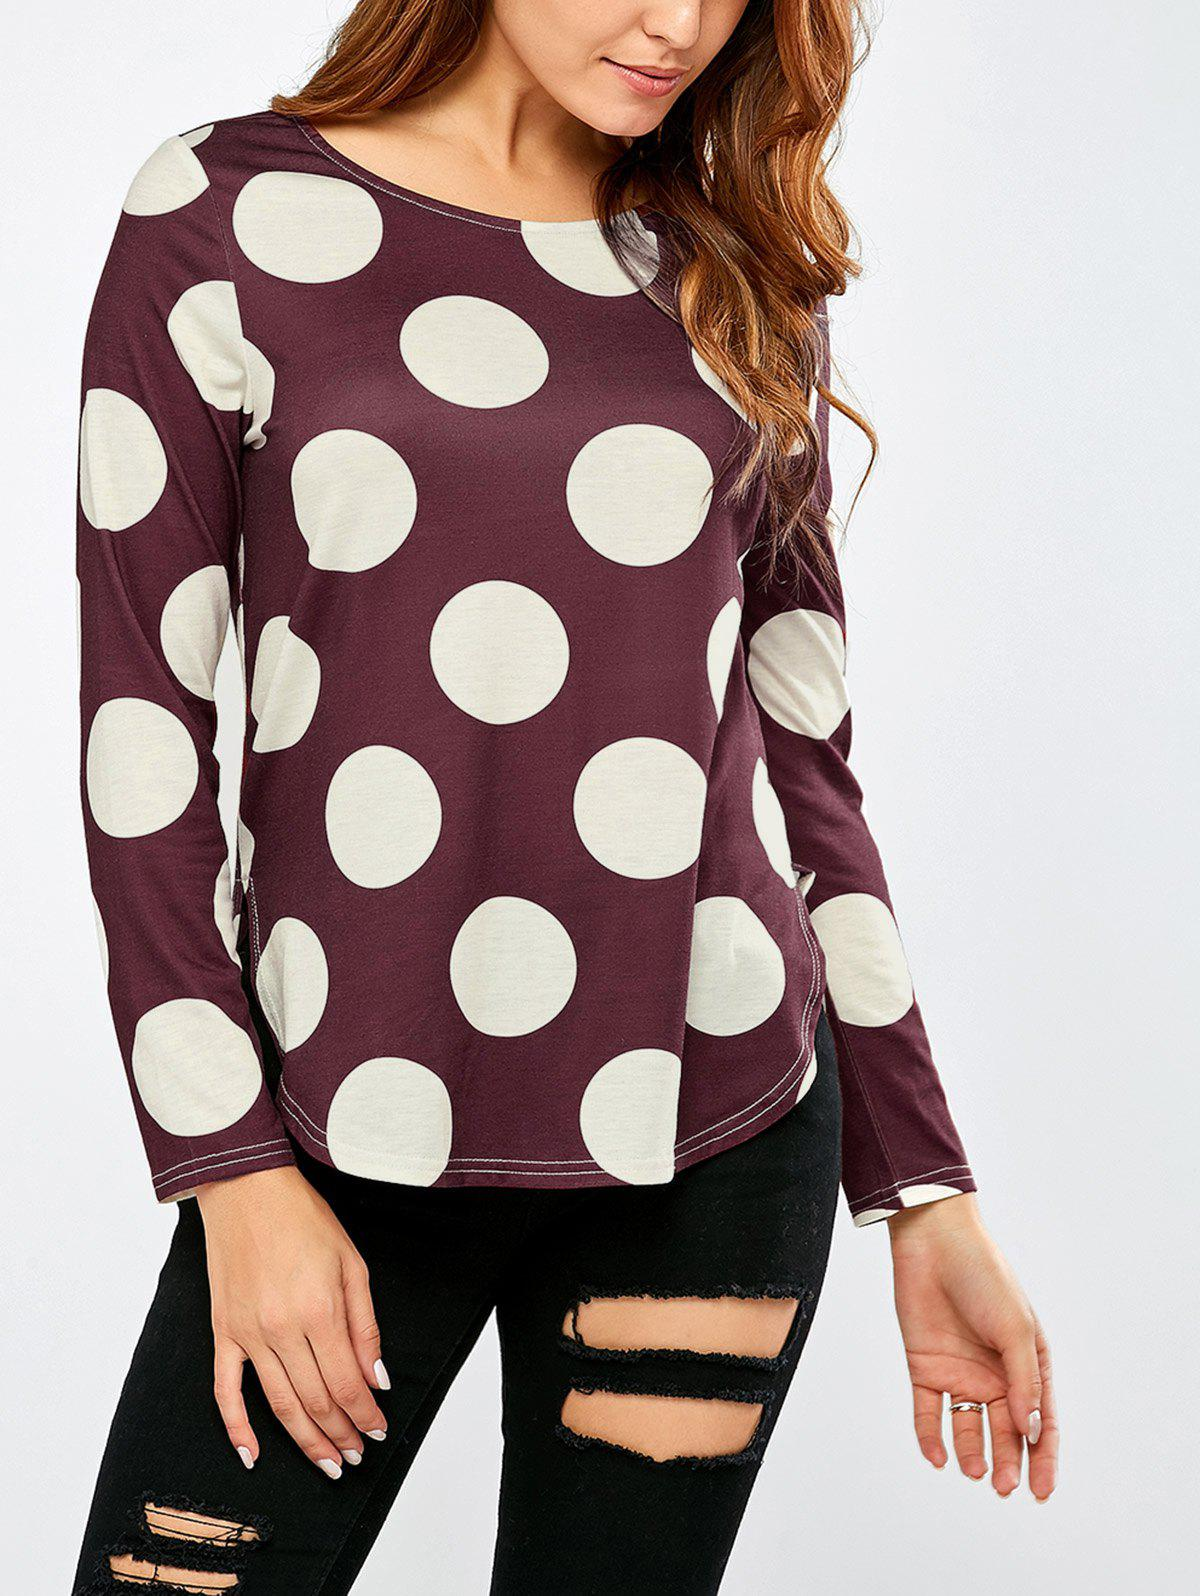 Polka Dot High Low Hem T-Shirt - COLORMIX XL